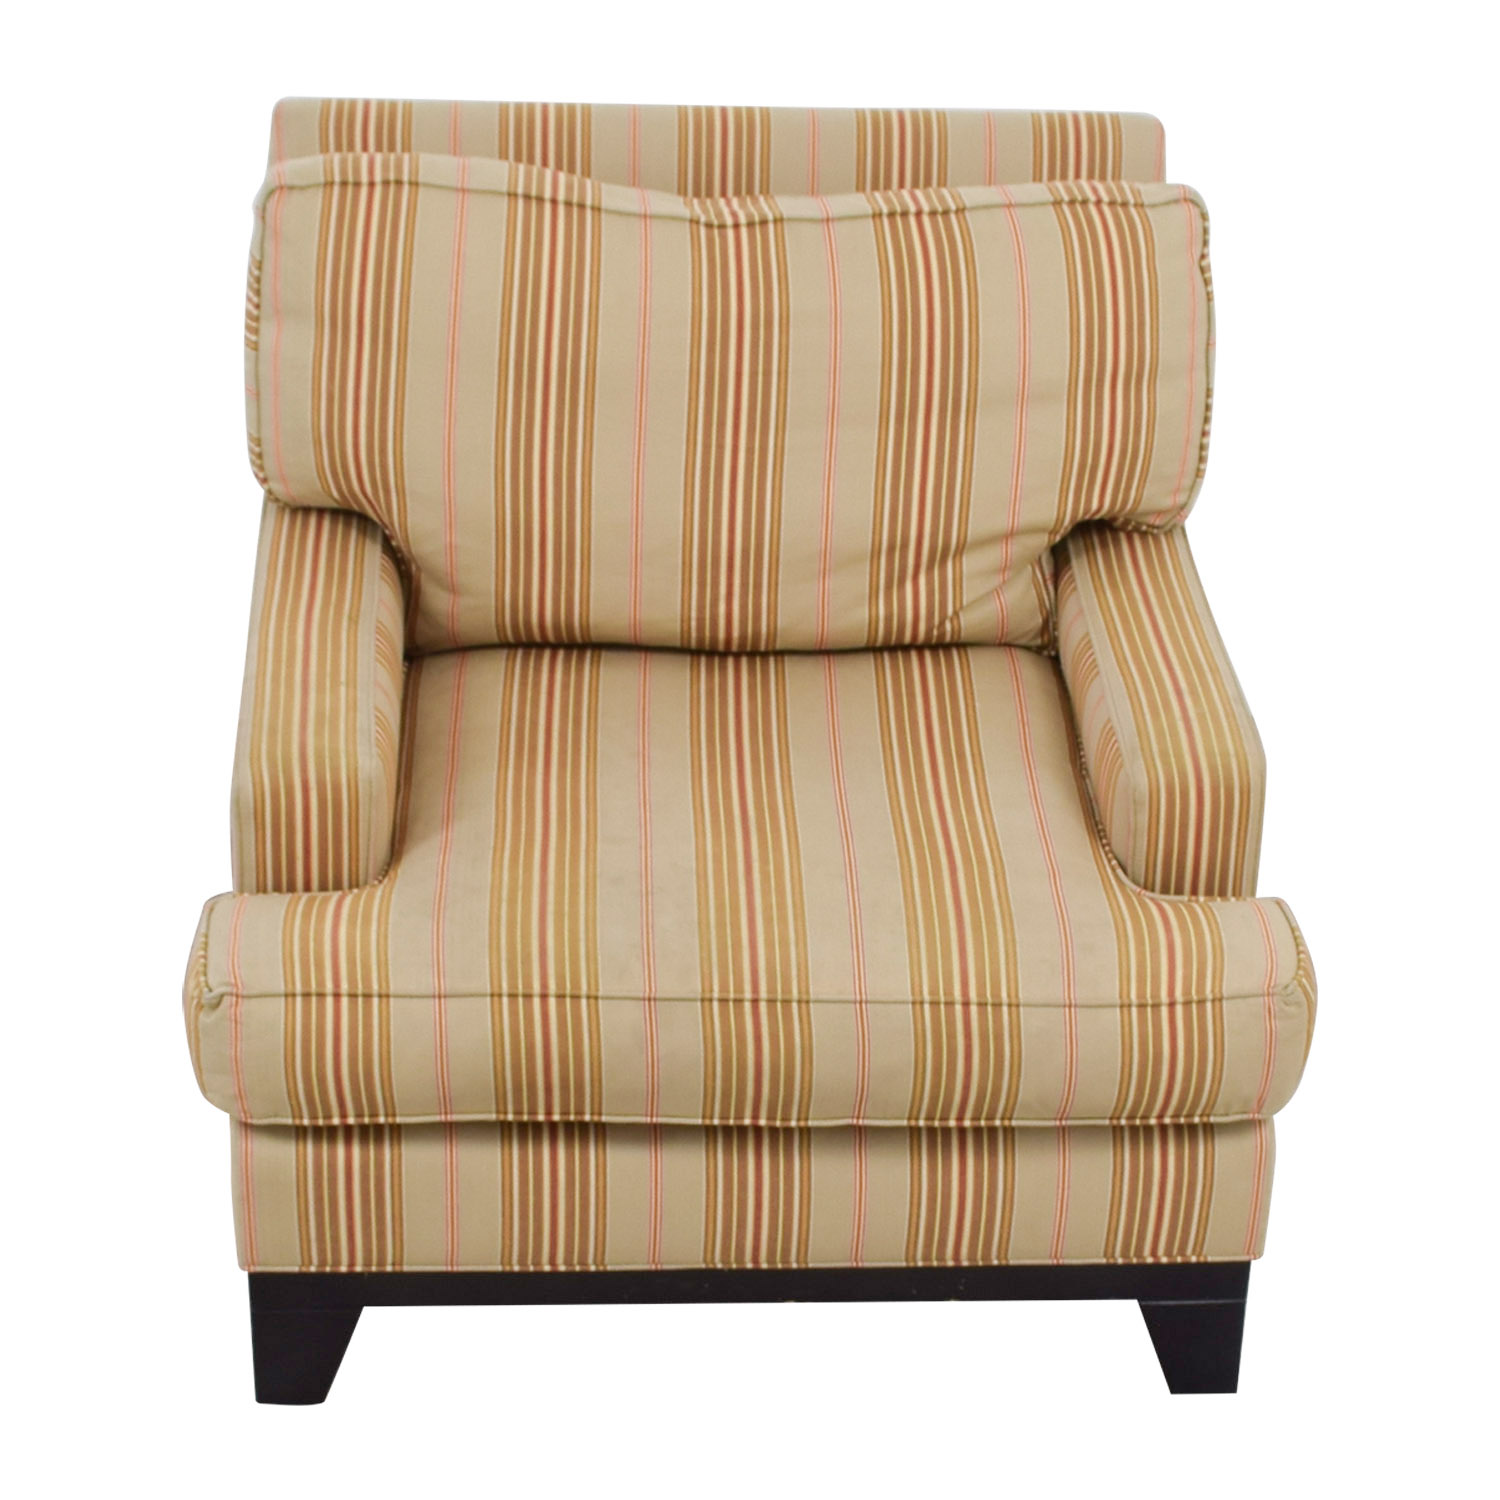 Ethan Allen Ethan Allen Beige Gold and Red Striped Arm Chair price